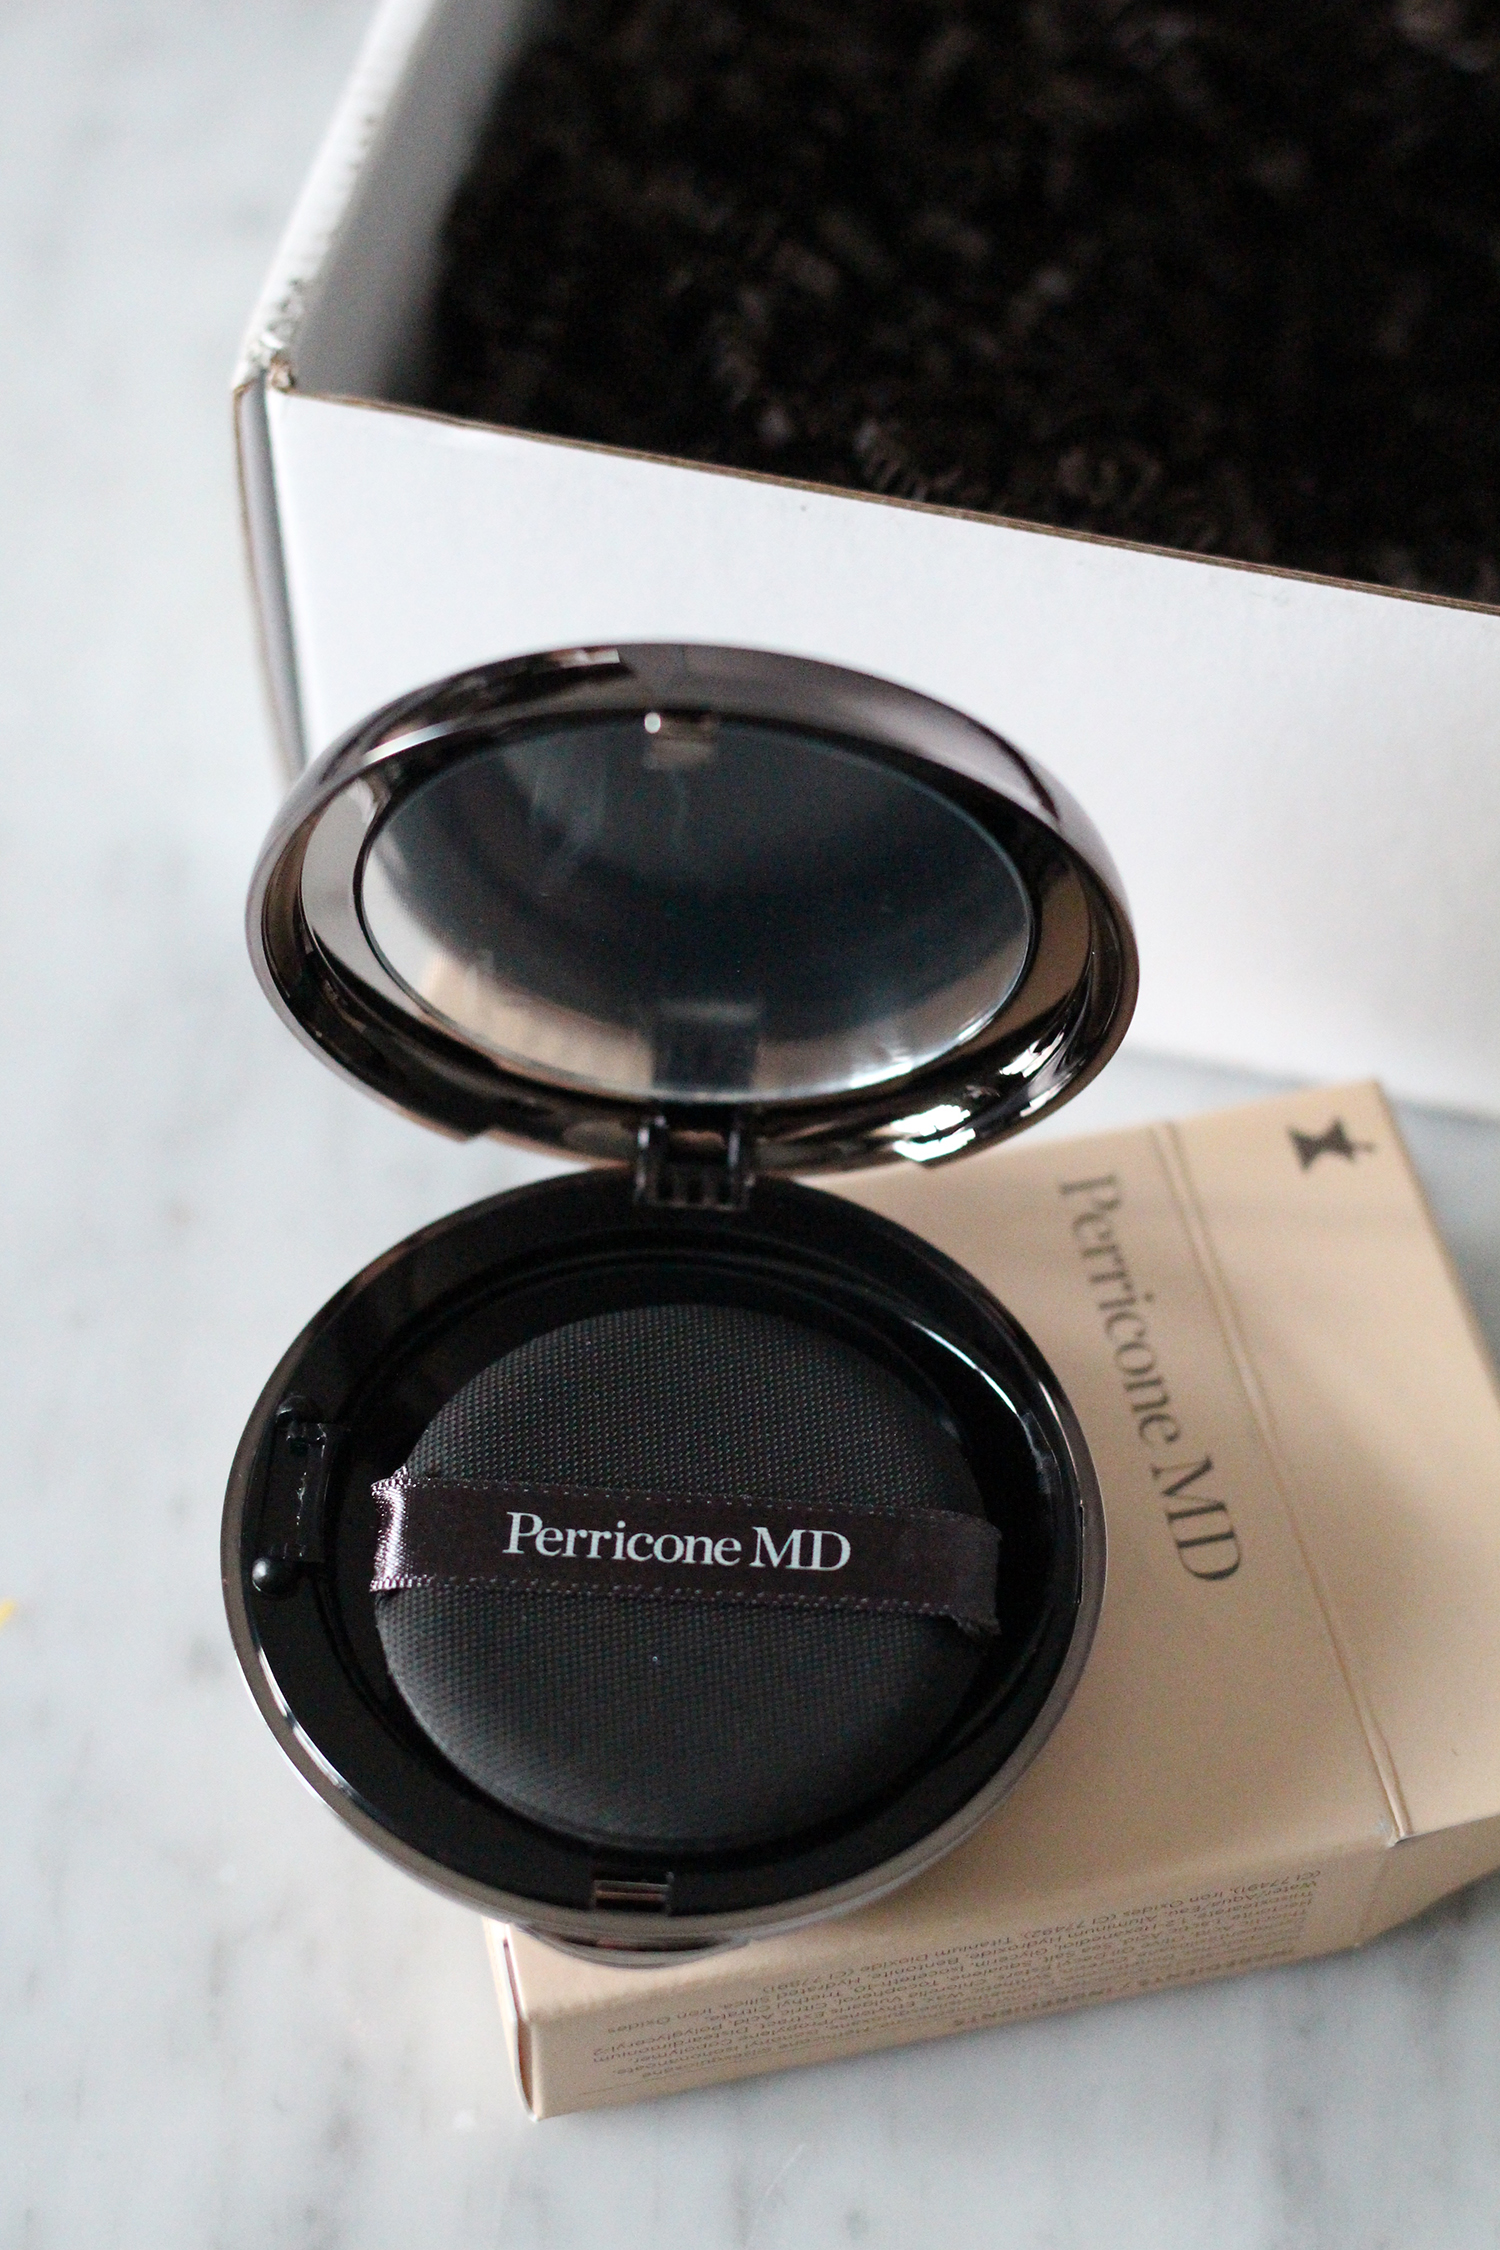 Perricone MD Makeup Review